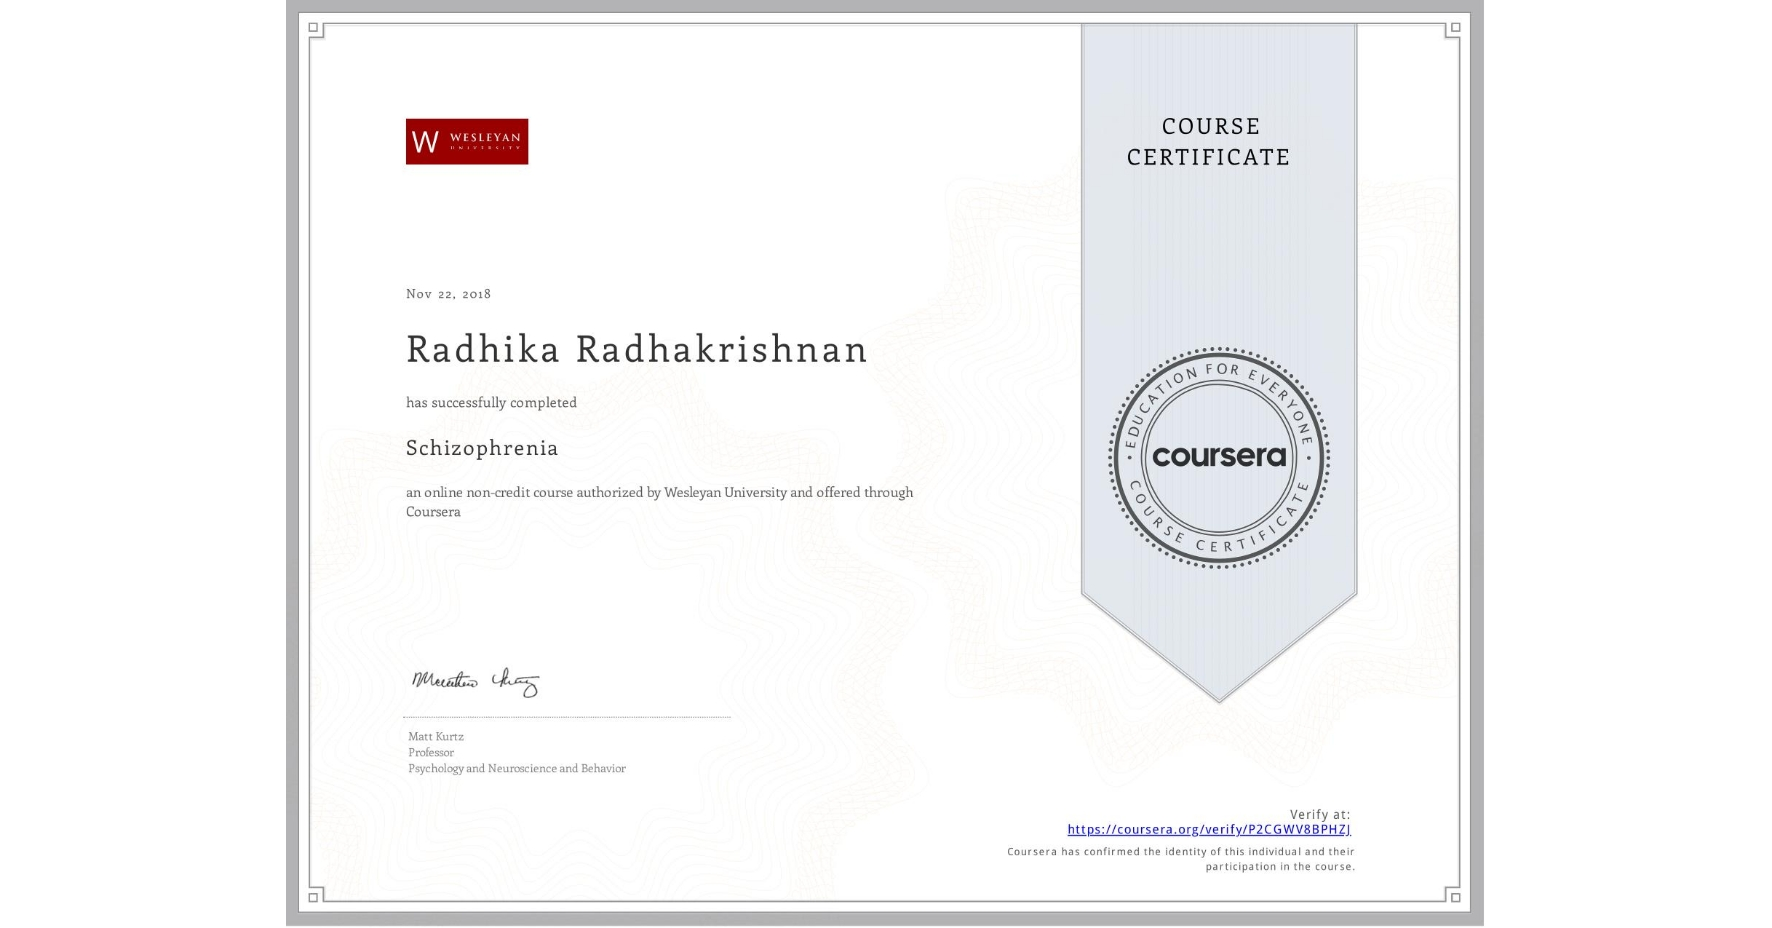 View certificate for Radhika Radhakrishnan, Schizophrenia, an online non-credit course authorized by Wesleyan University and offered through Coursera